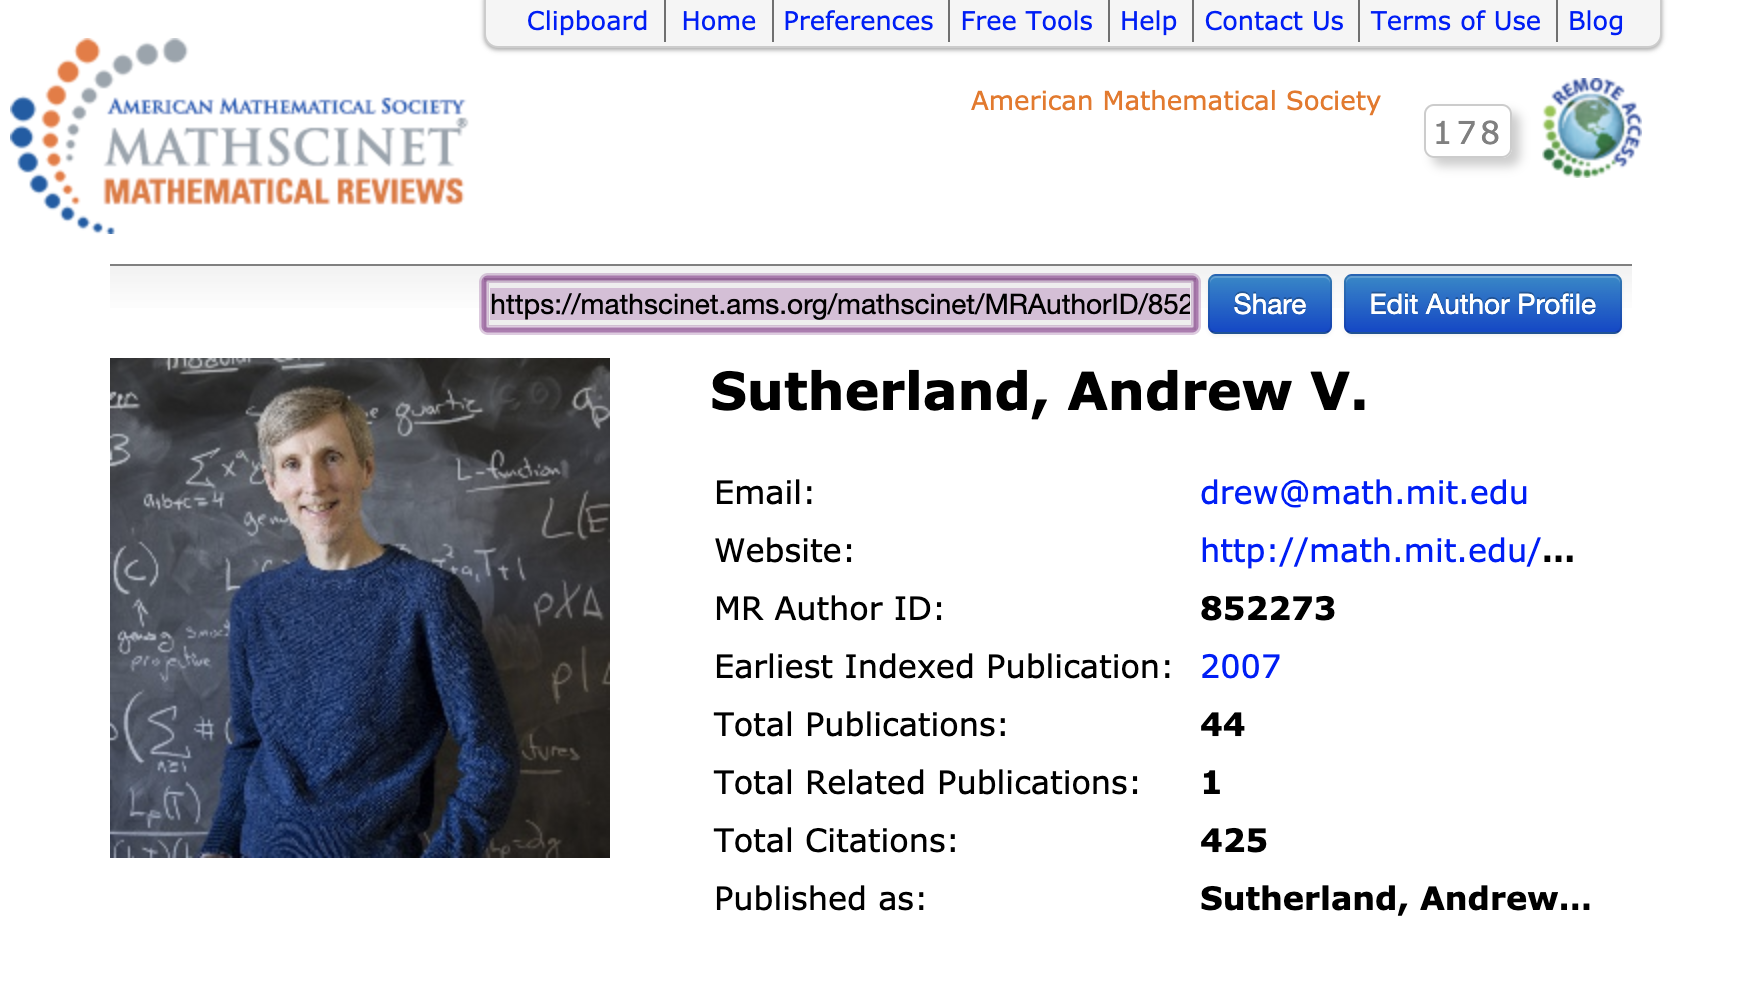 Author Profile Page for Andrew Sutherland showing the SHARE functionality